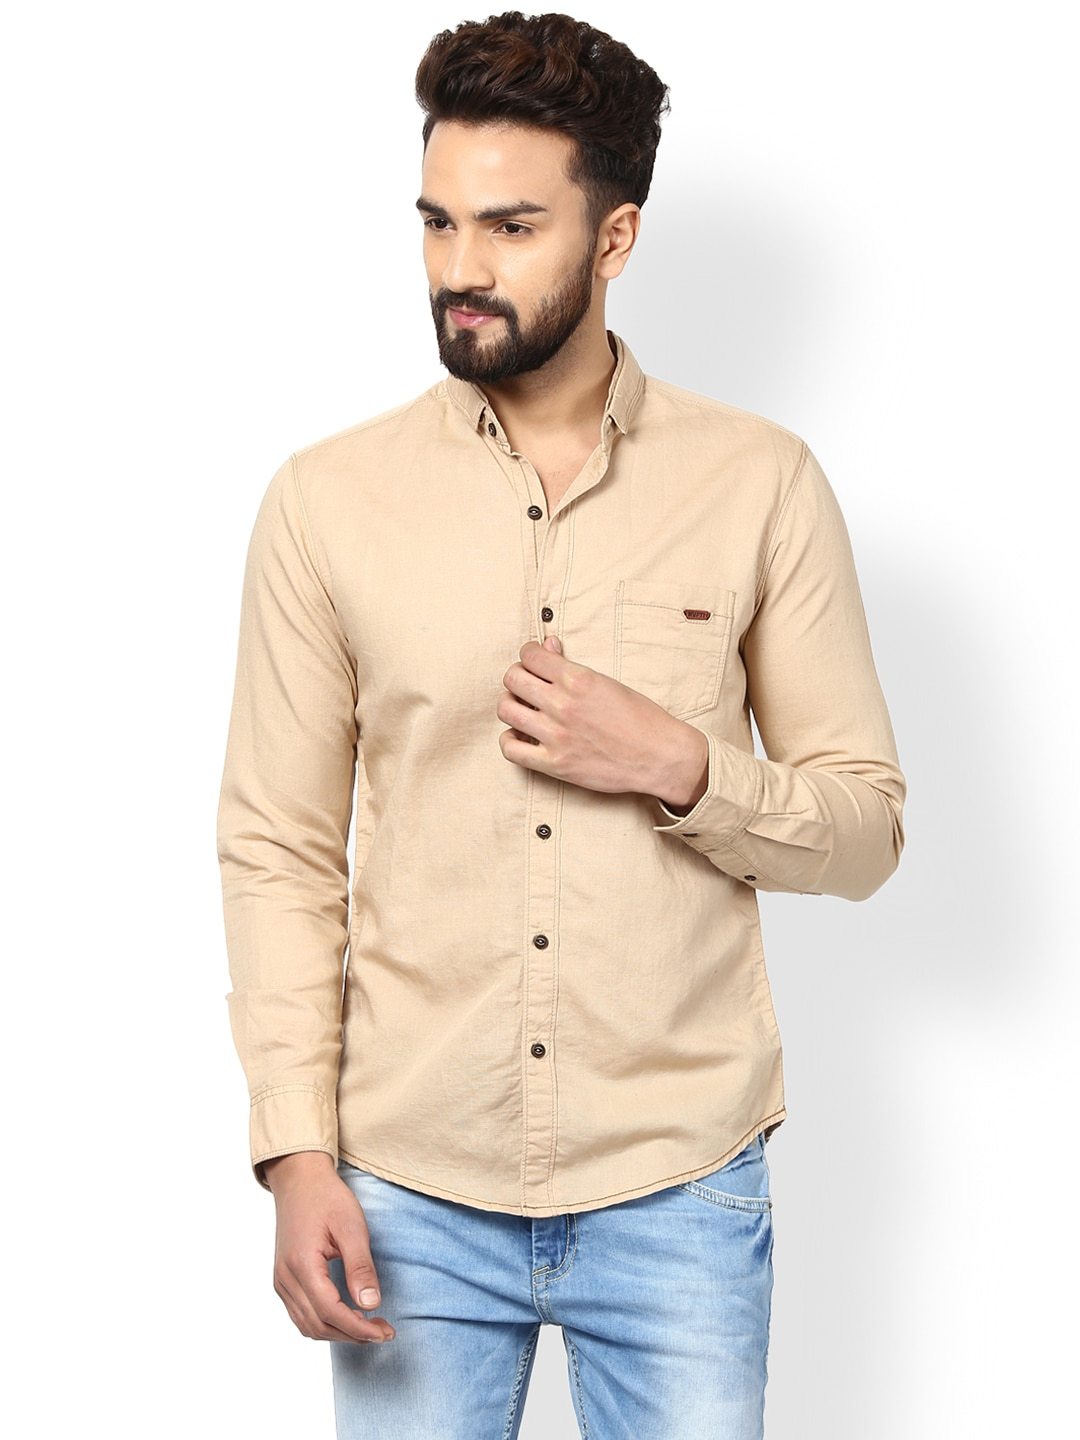 Mufti Men Beige Slim Fit Solid Casual Shirt image